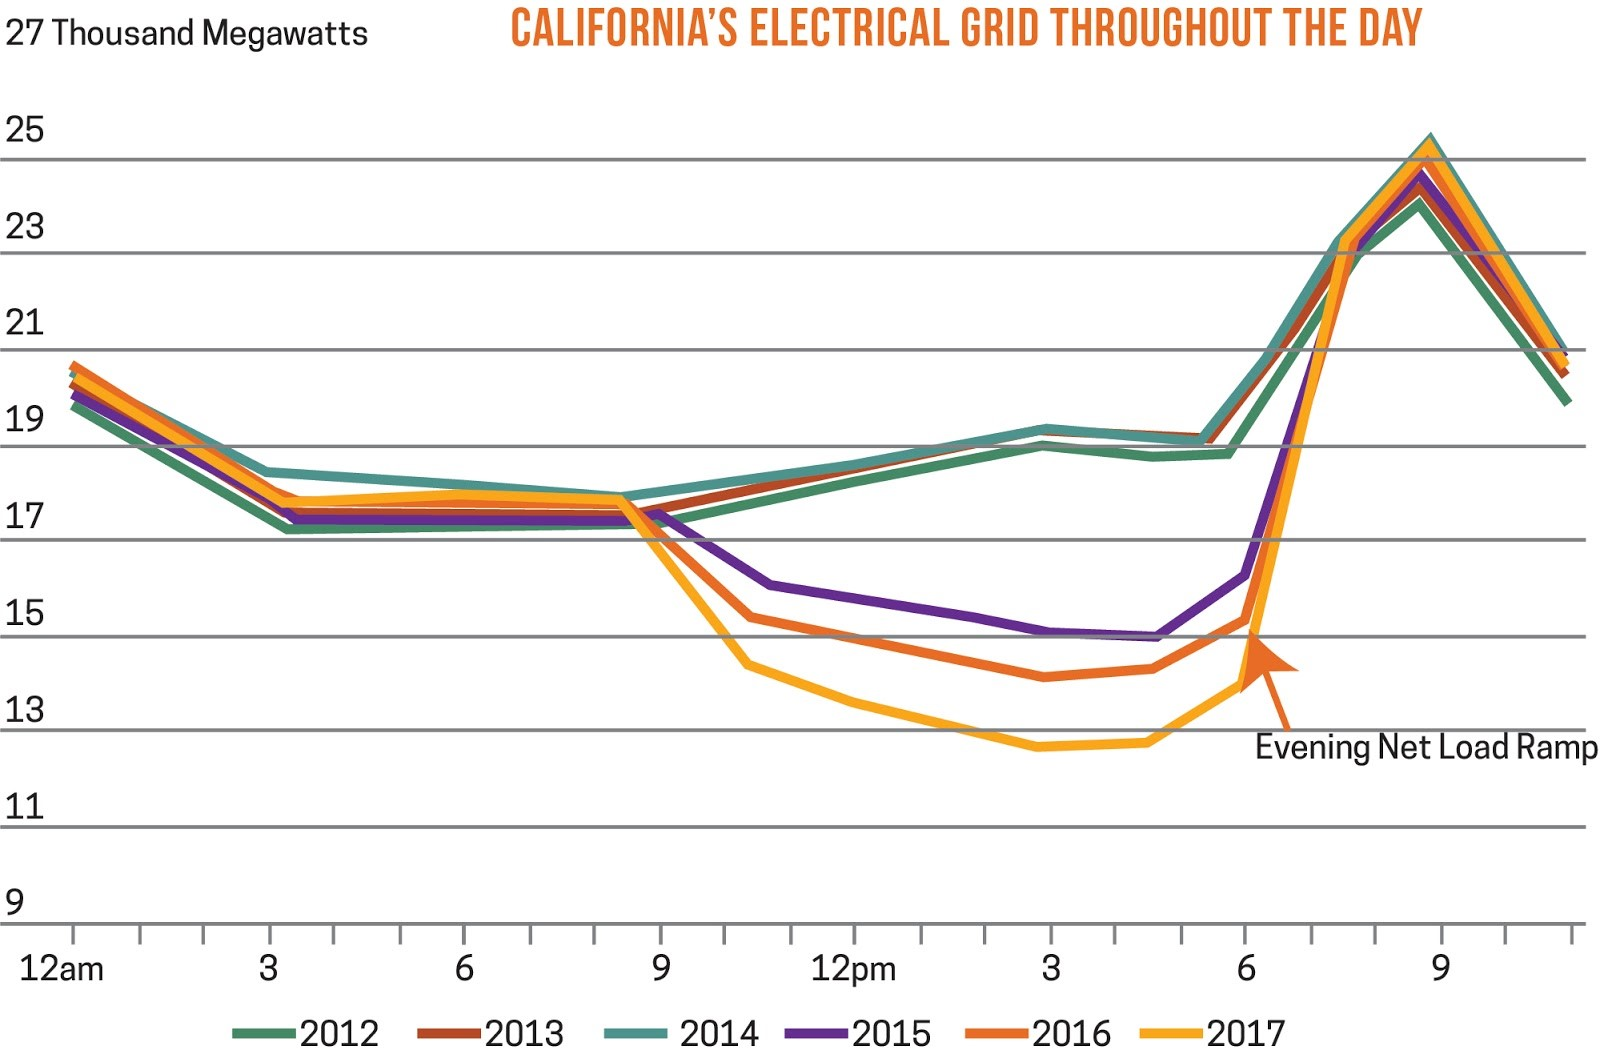 California's Electrical Grid Throughout The Day